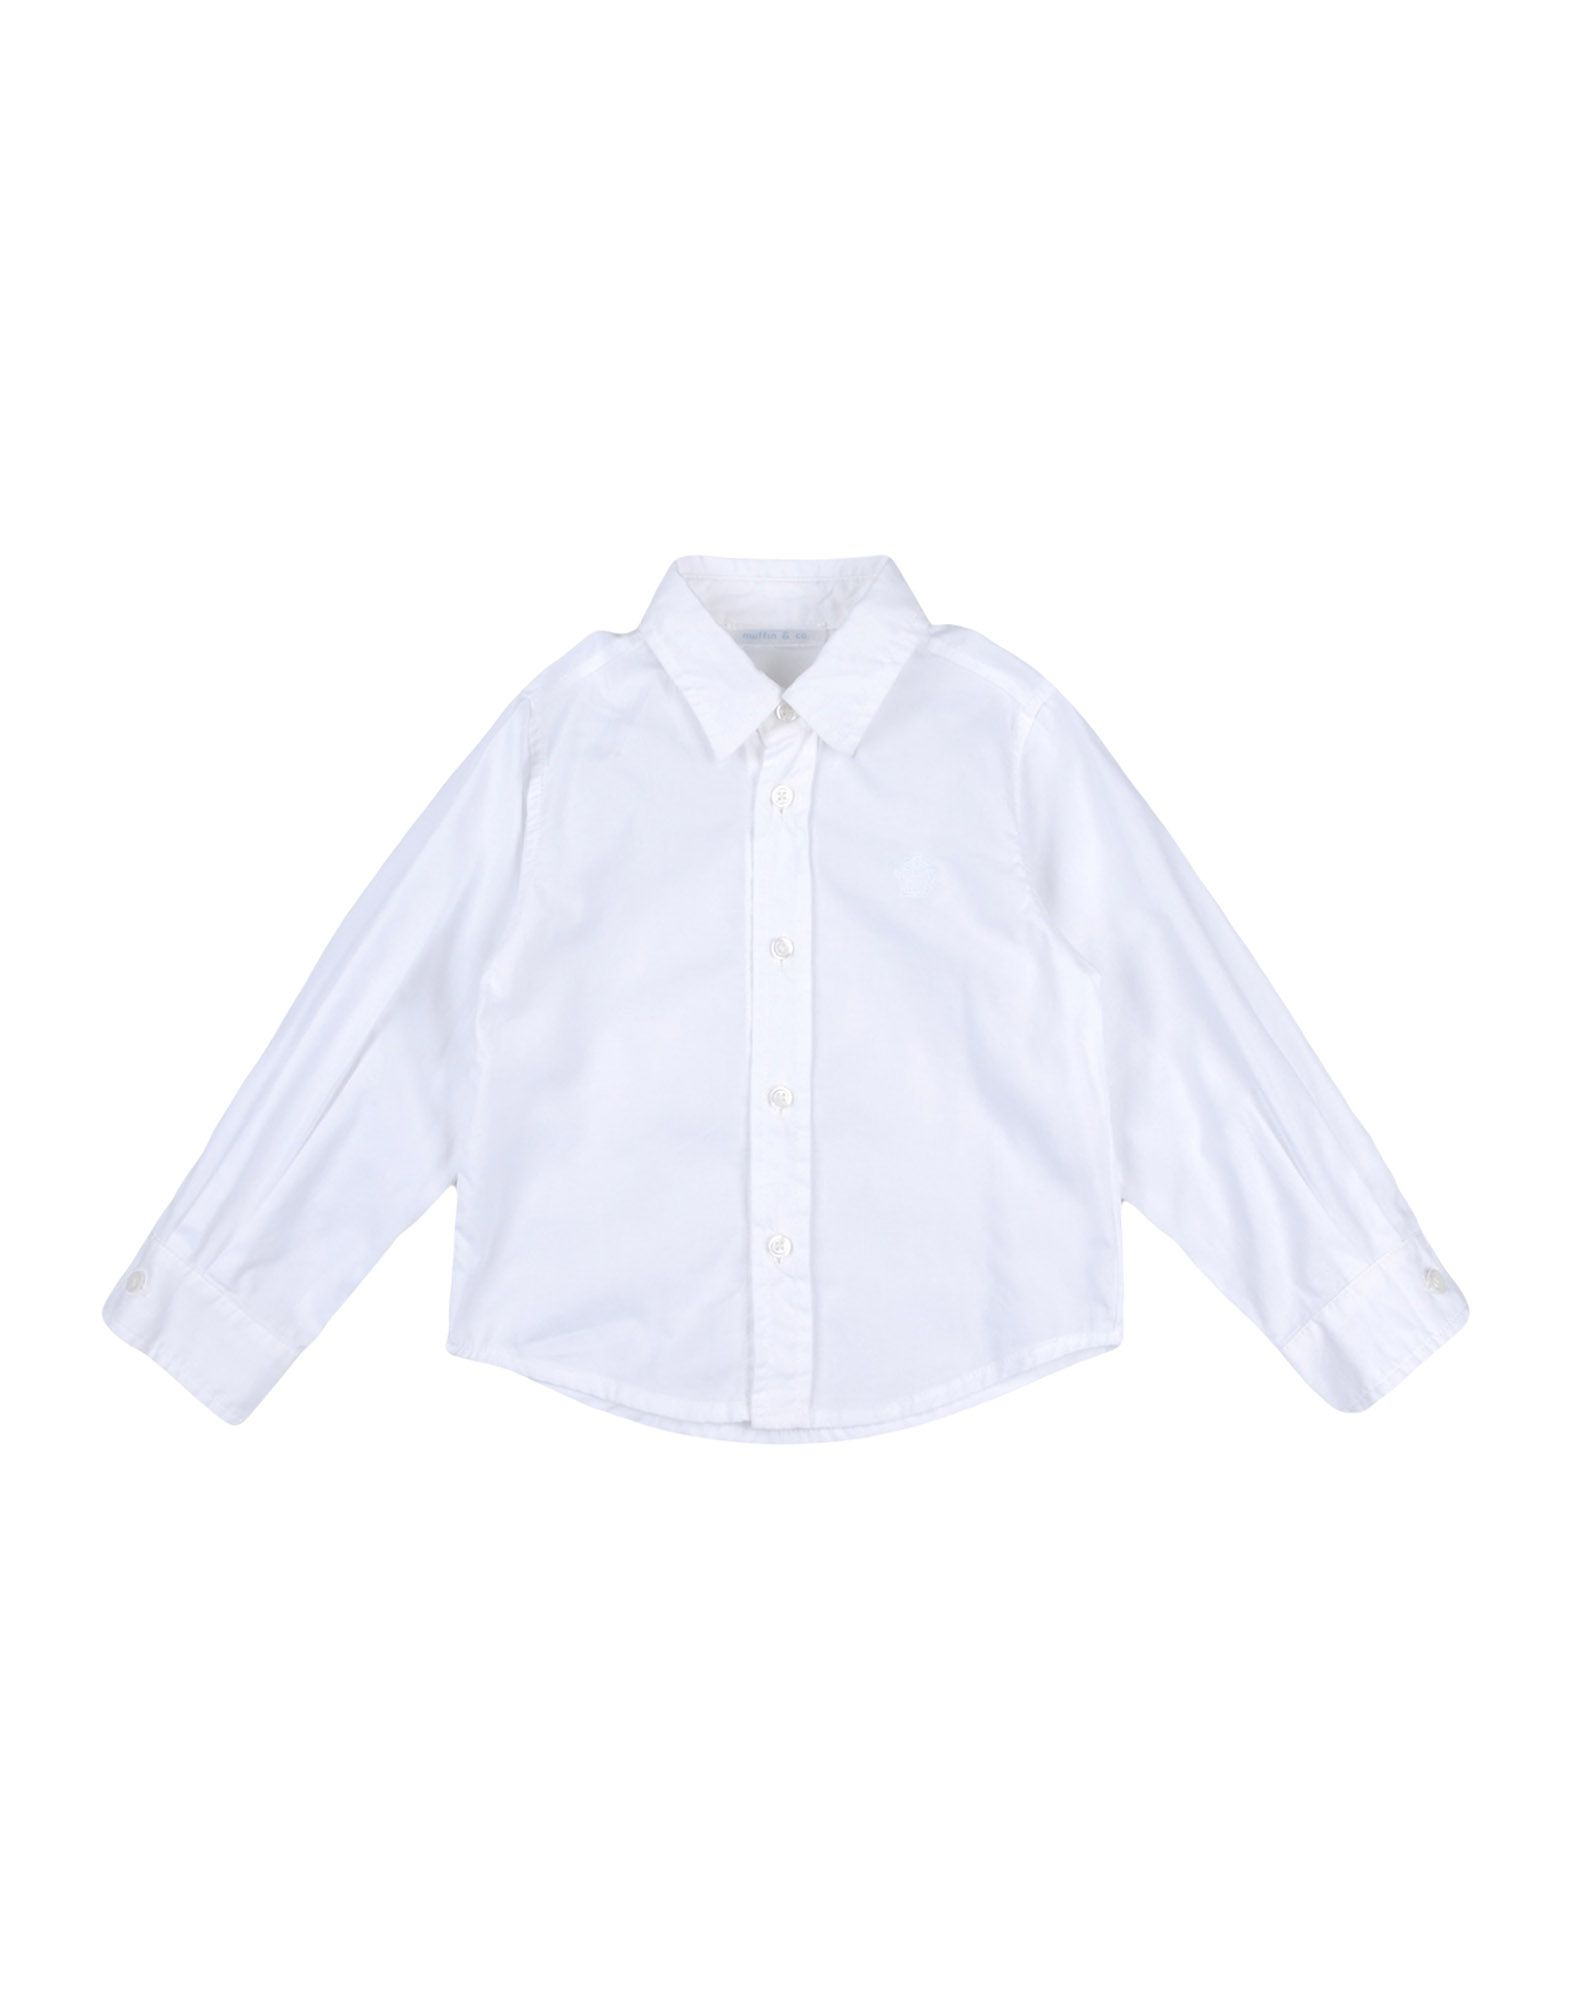 Muffin & Co. Kids' Shirts In White